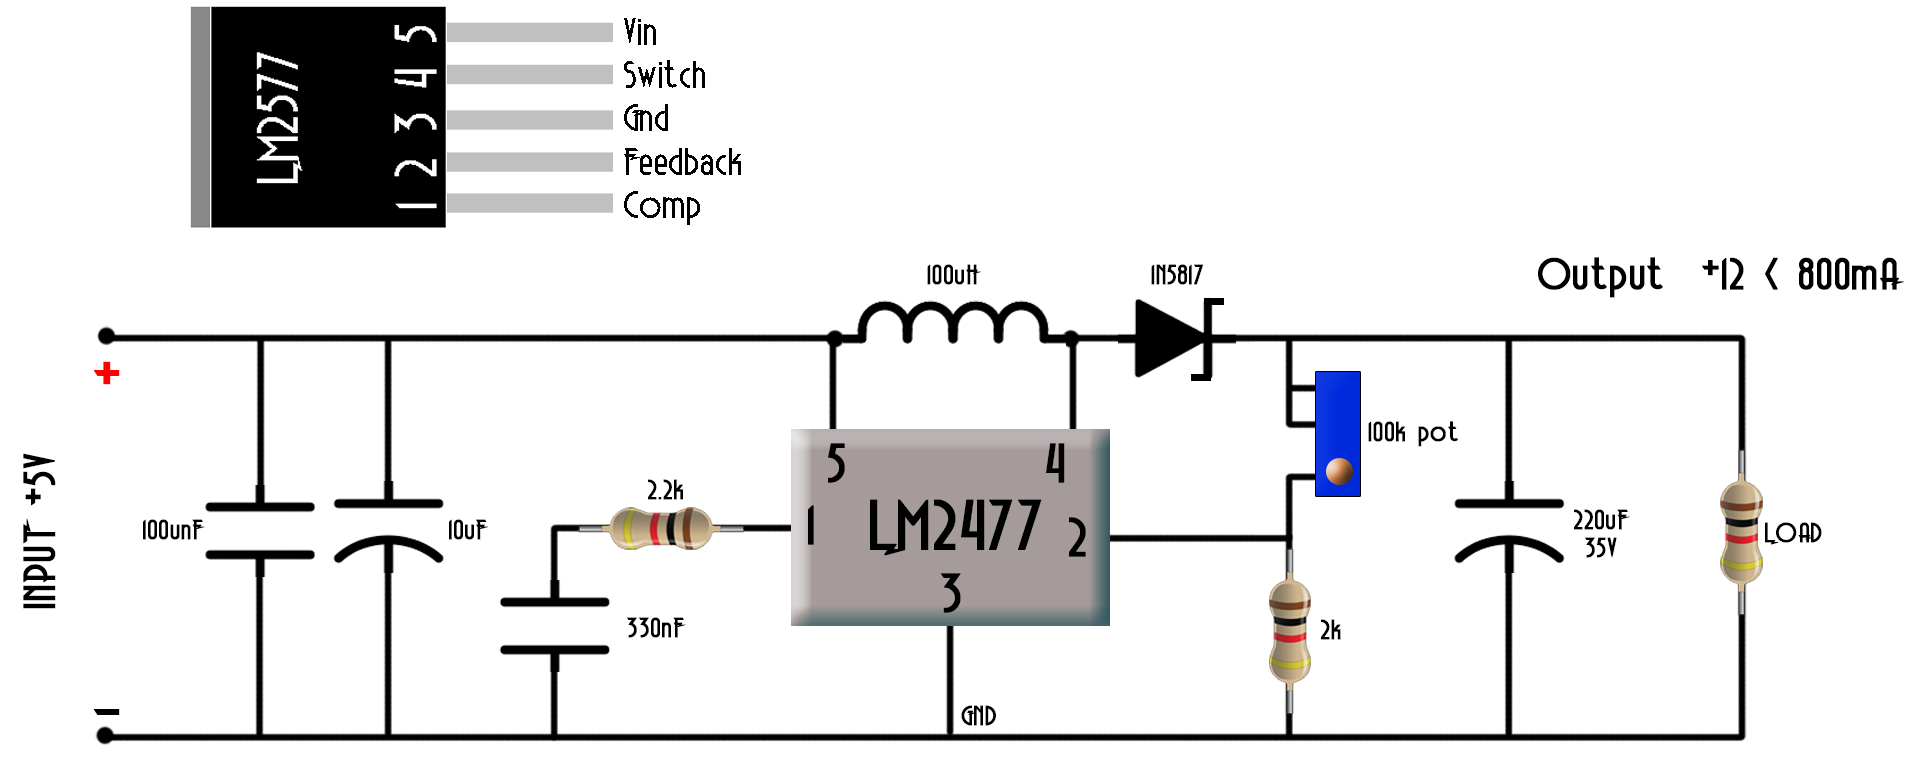 Dc To Boost Converter Circuit Homemade Using Highside Mosfet Switches At Higher Voltages The Input Could Up 12 Volts Dont Apply Voltage Or You Burn Lm2577 Adj Component In This Case We Need No External Switch Since